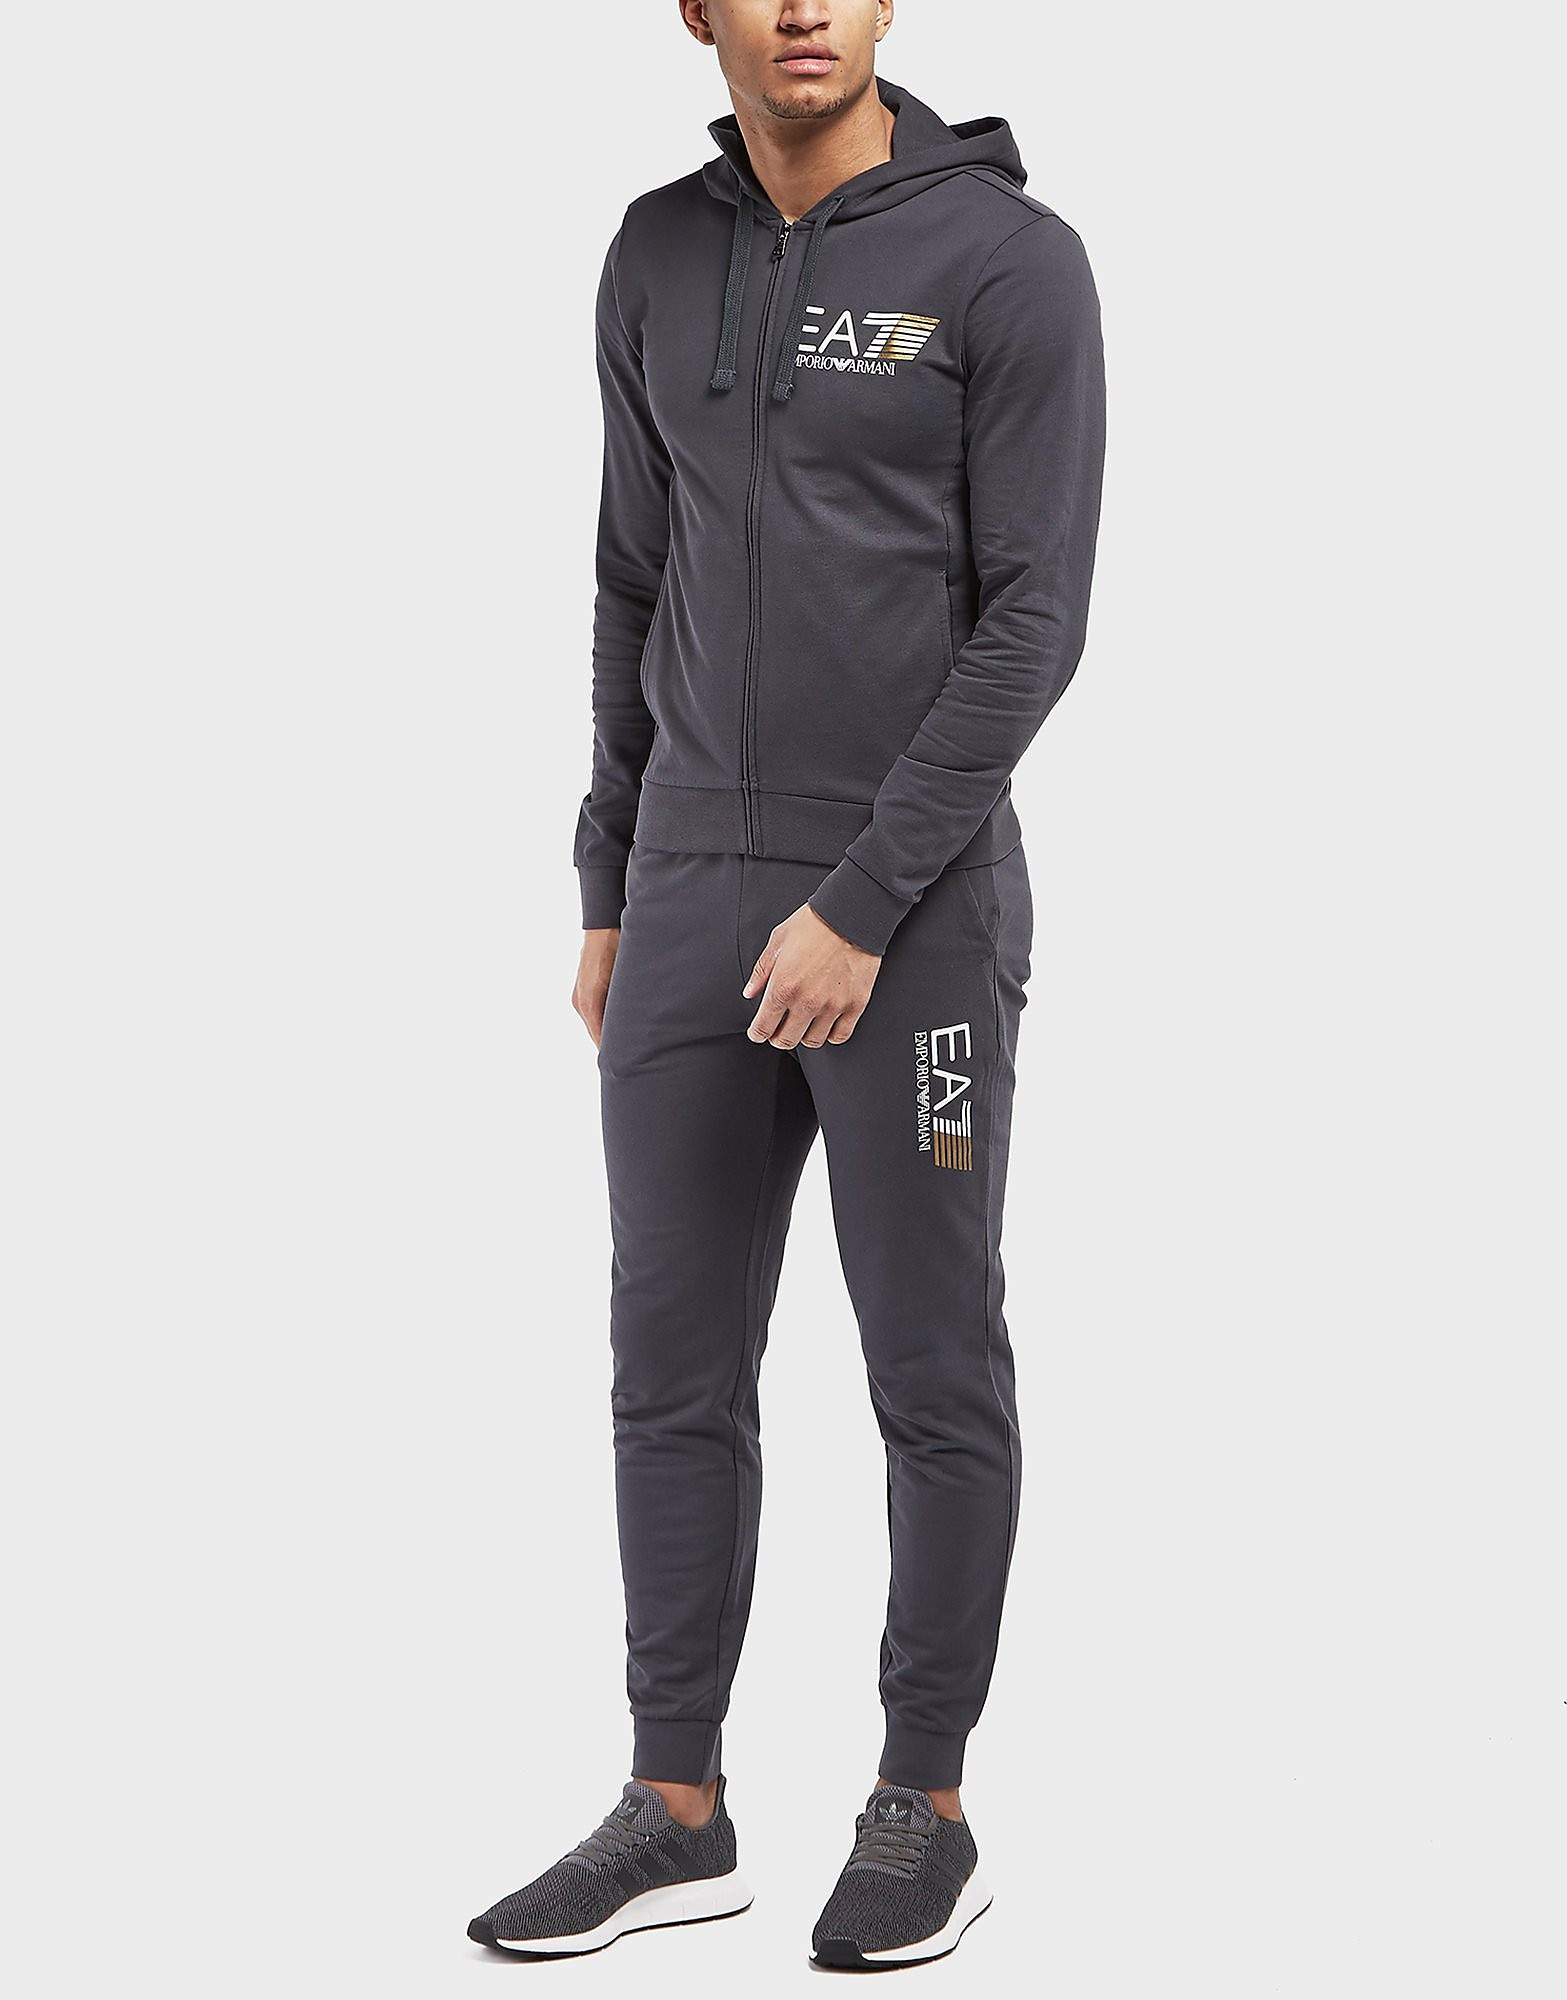 Emporio Armani EA7 Visibility 7 Full Hooded Tracksuit